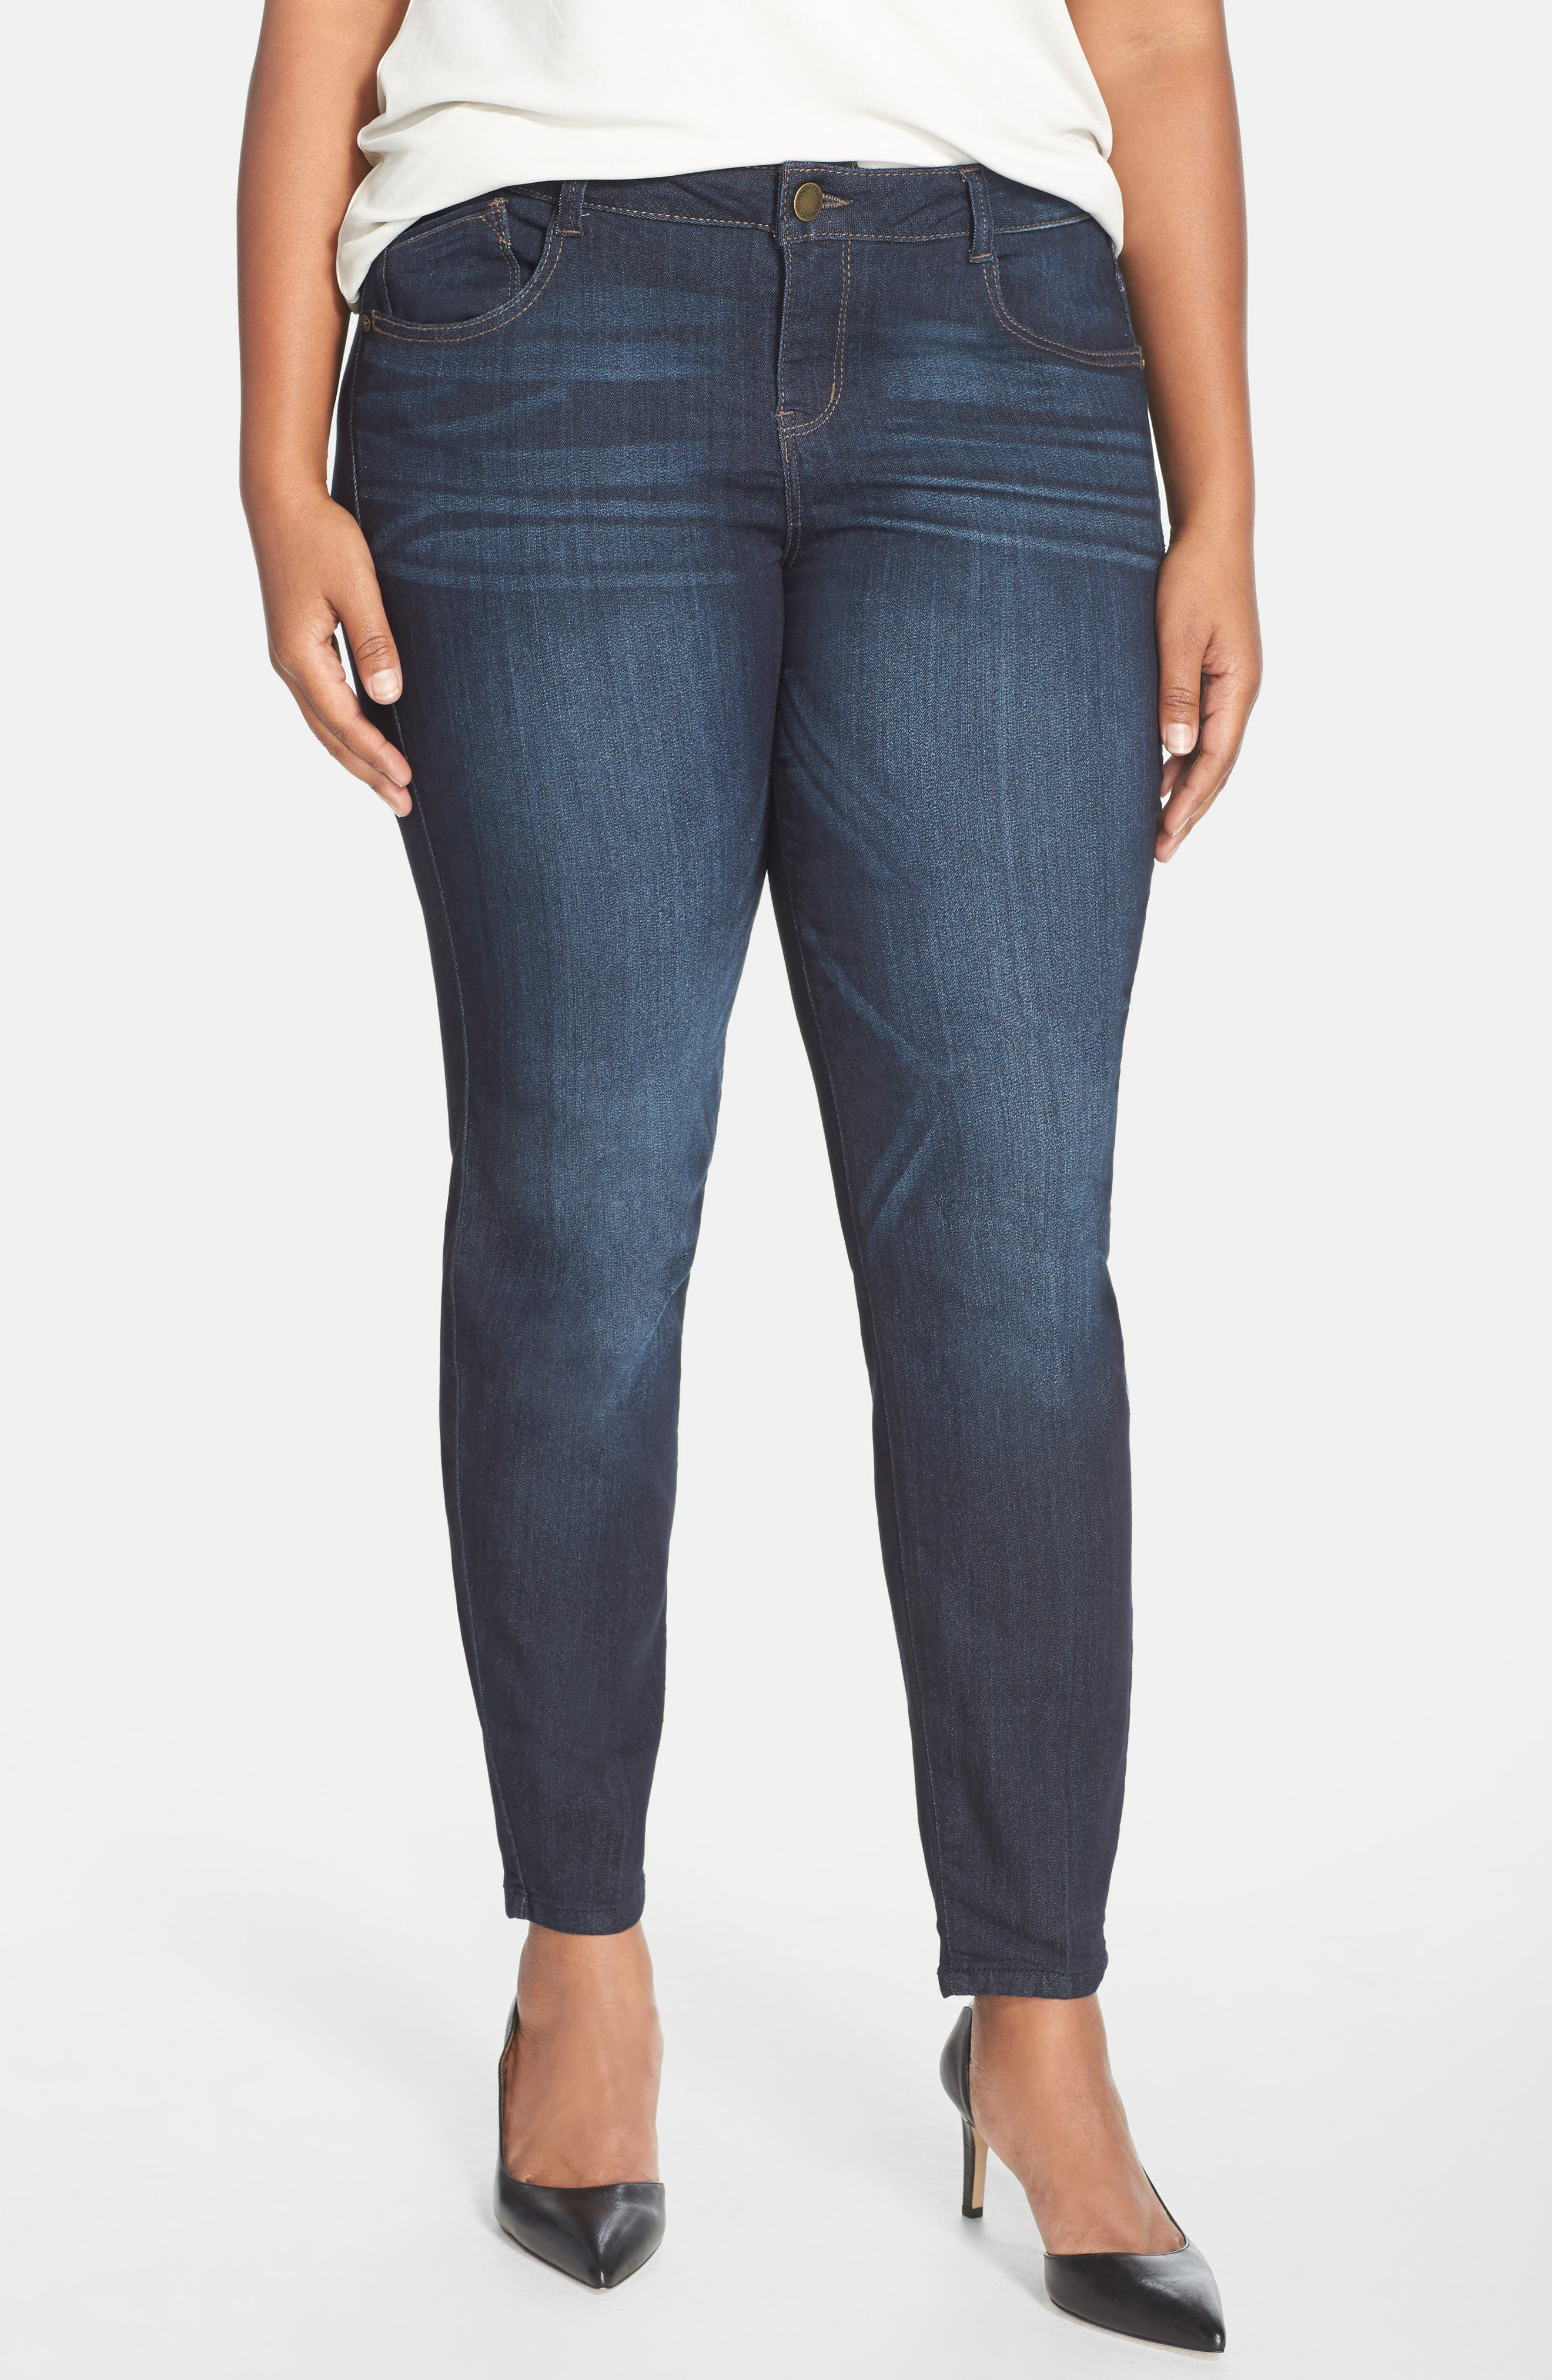 WIT & WISDOM, 'Super Smooth' Stretch Skinny Jeans, Main thumbnail 1, color, DARK NAVY